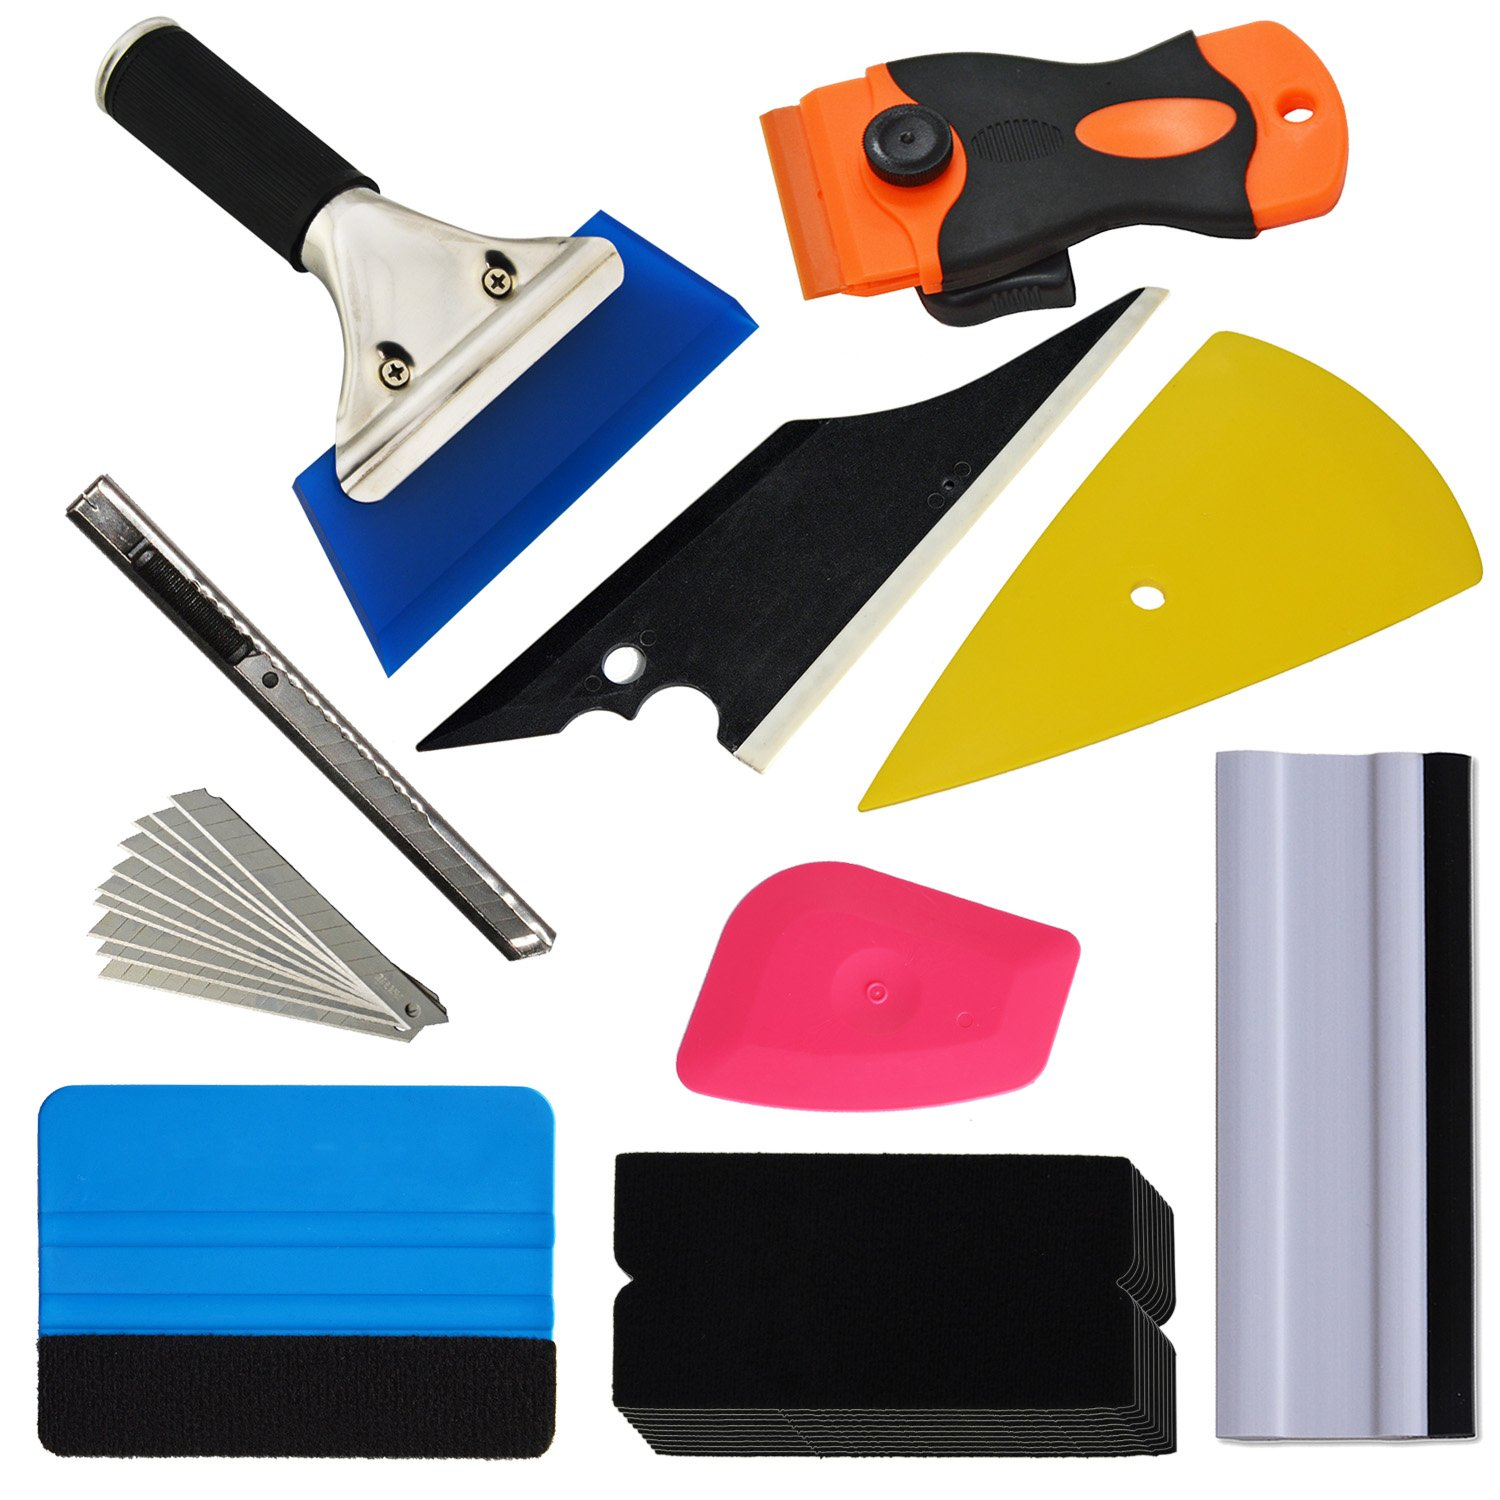 Film Cutters by Ehdis Scrapers 7 PCS Vehicle Glass Protective Film Car Window Wrapping Tint Vinyl Installing Tool: Squeegees Ehdis New Arrival!